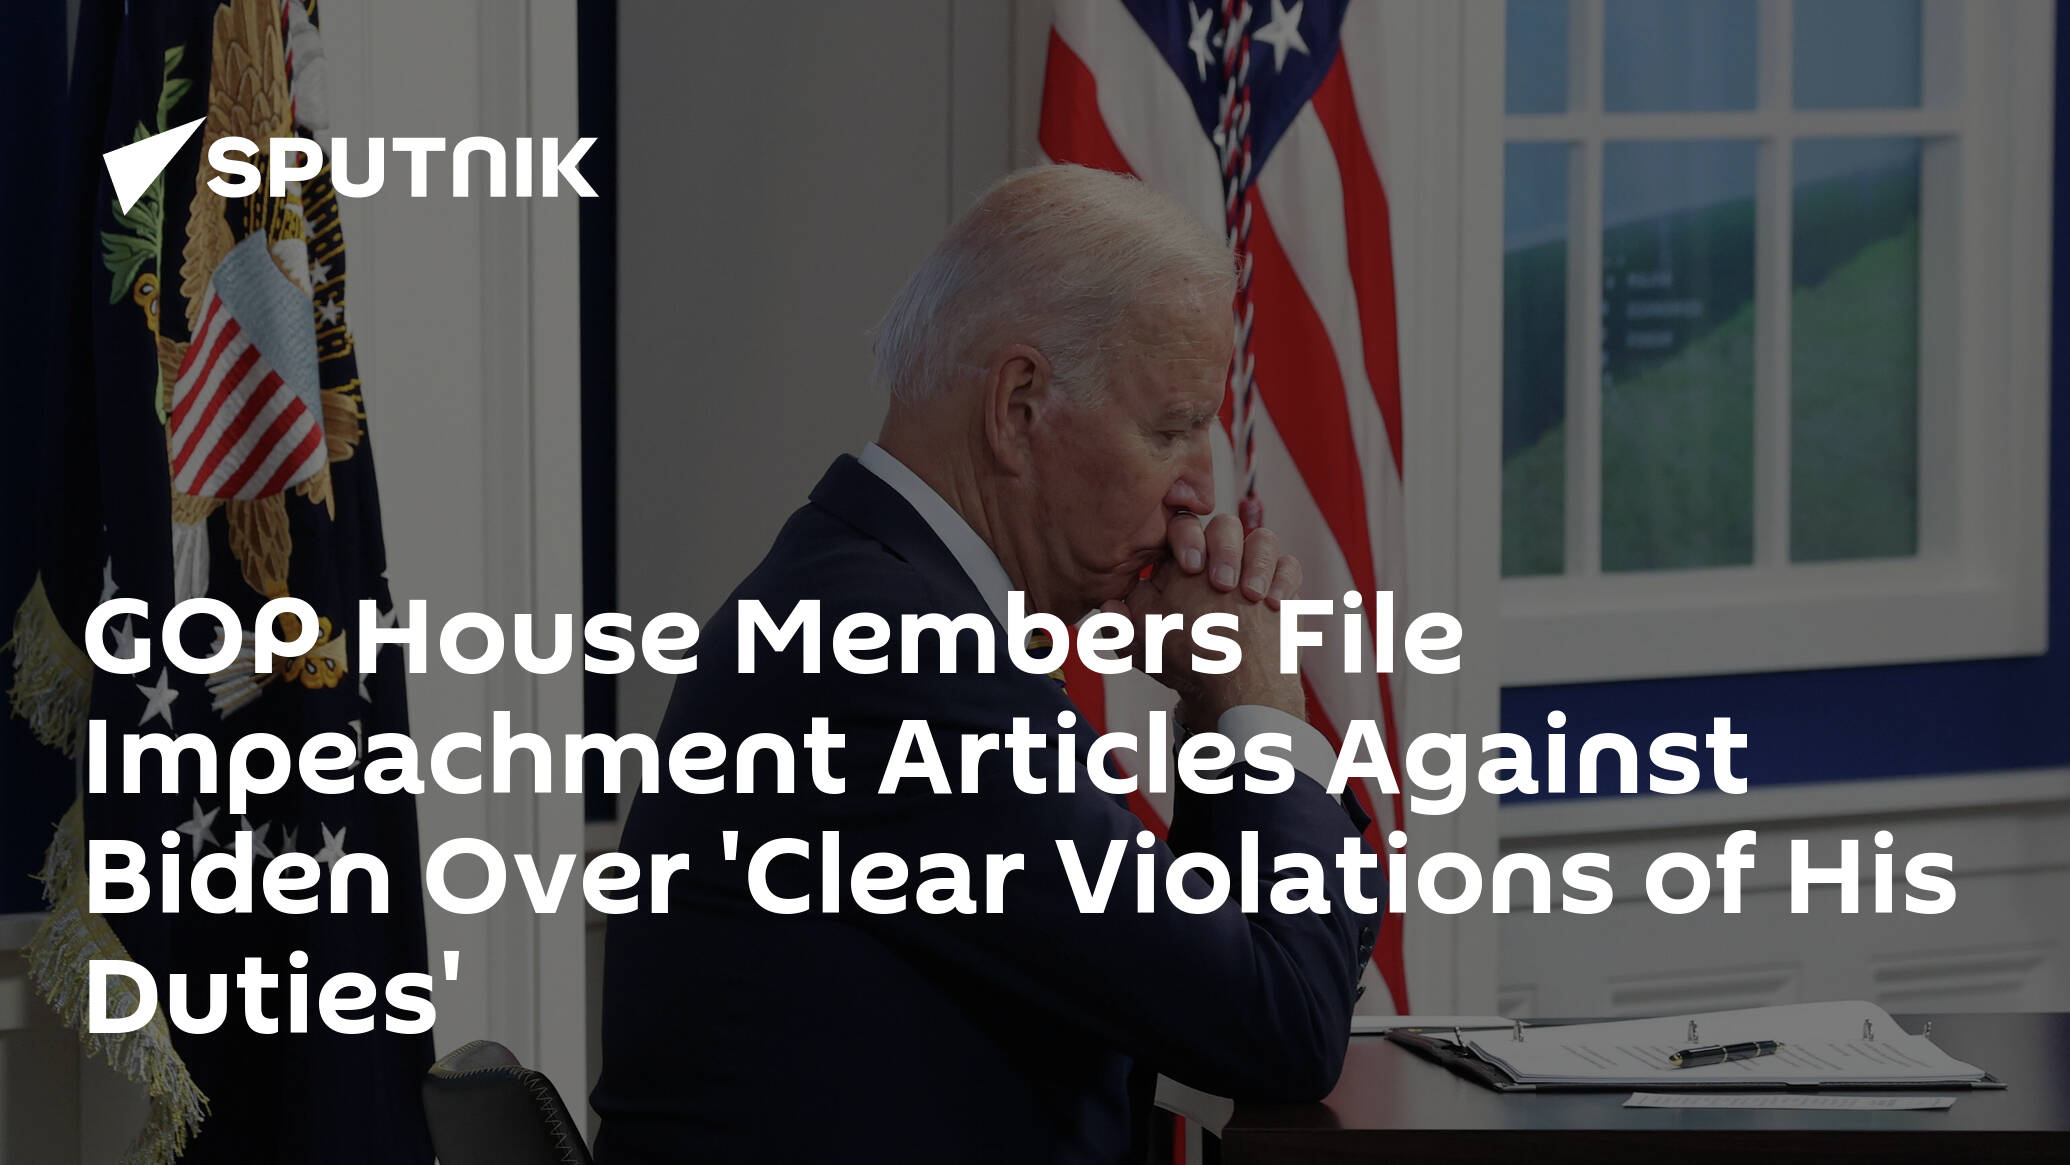 GOP House Members File Impeachment Articles Against Biden Over 'Clear Violations of His Duties'